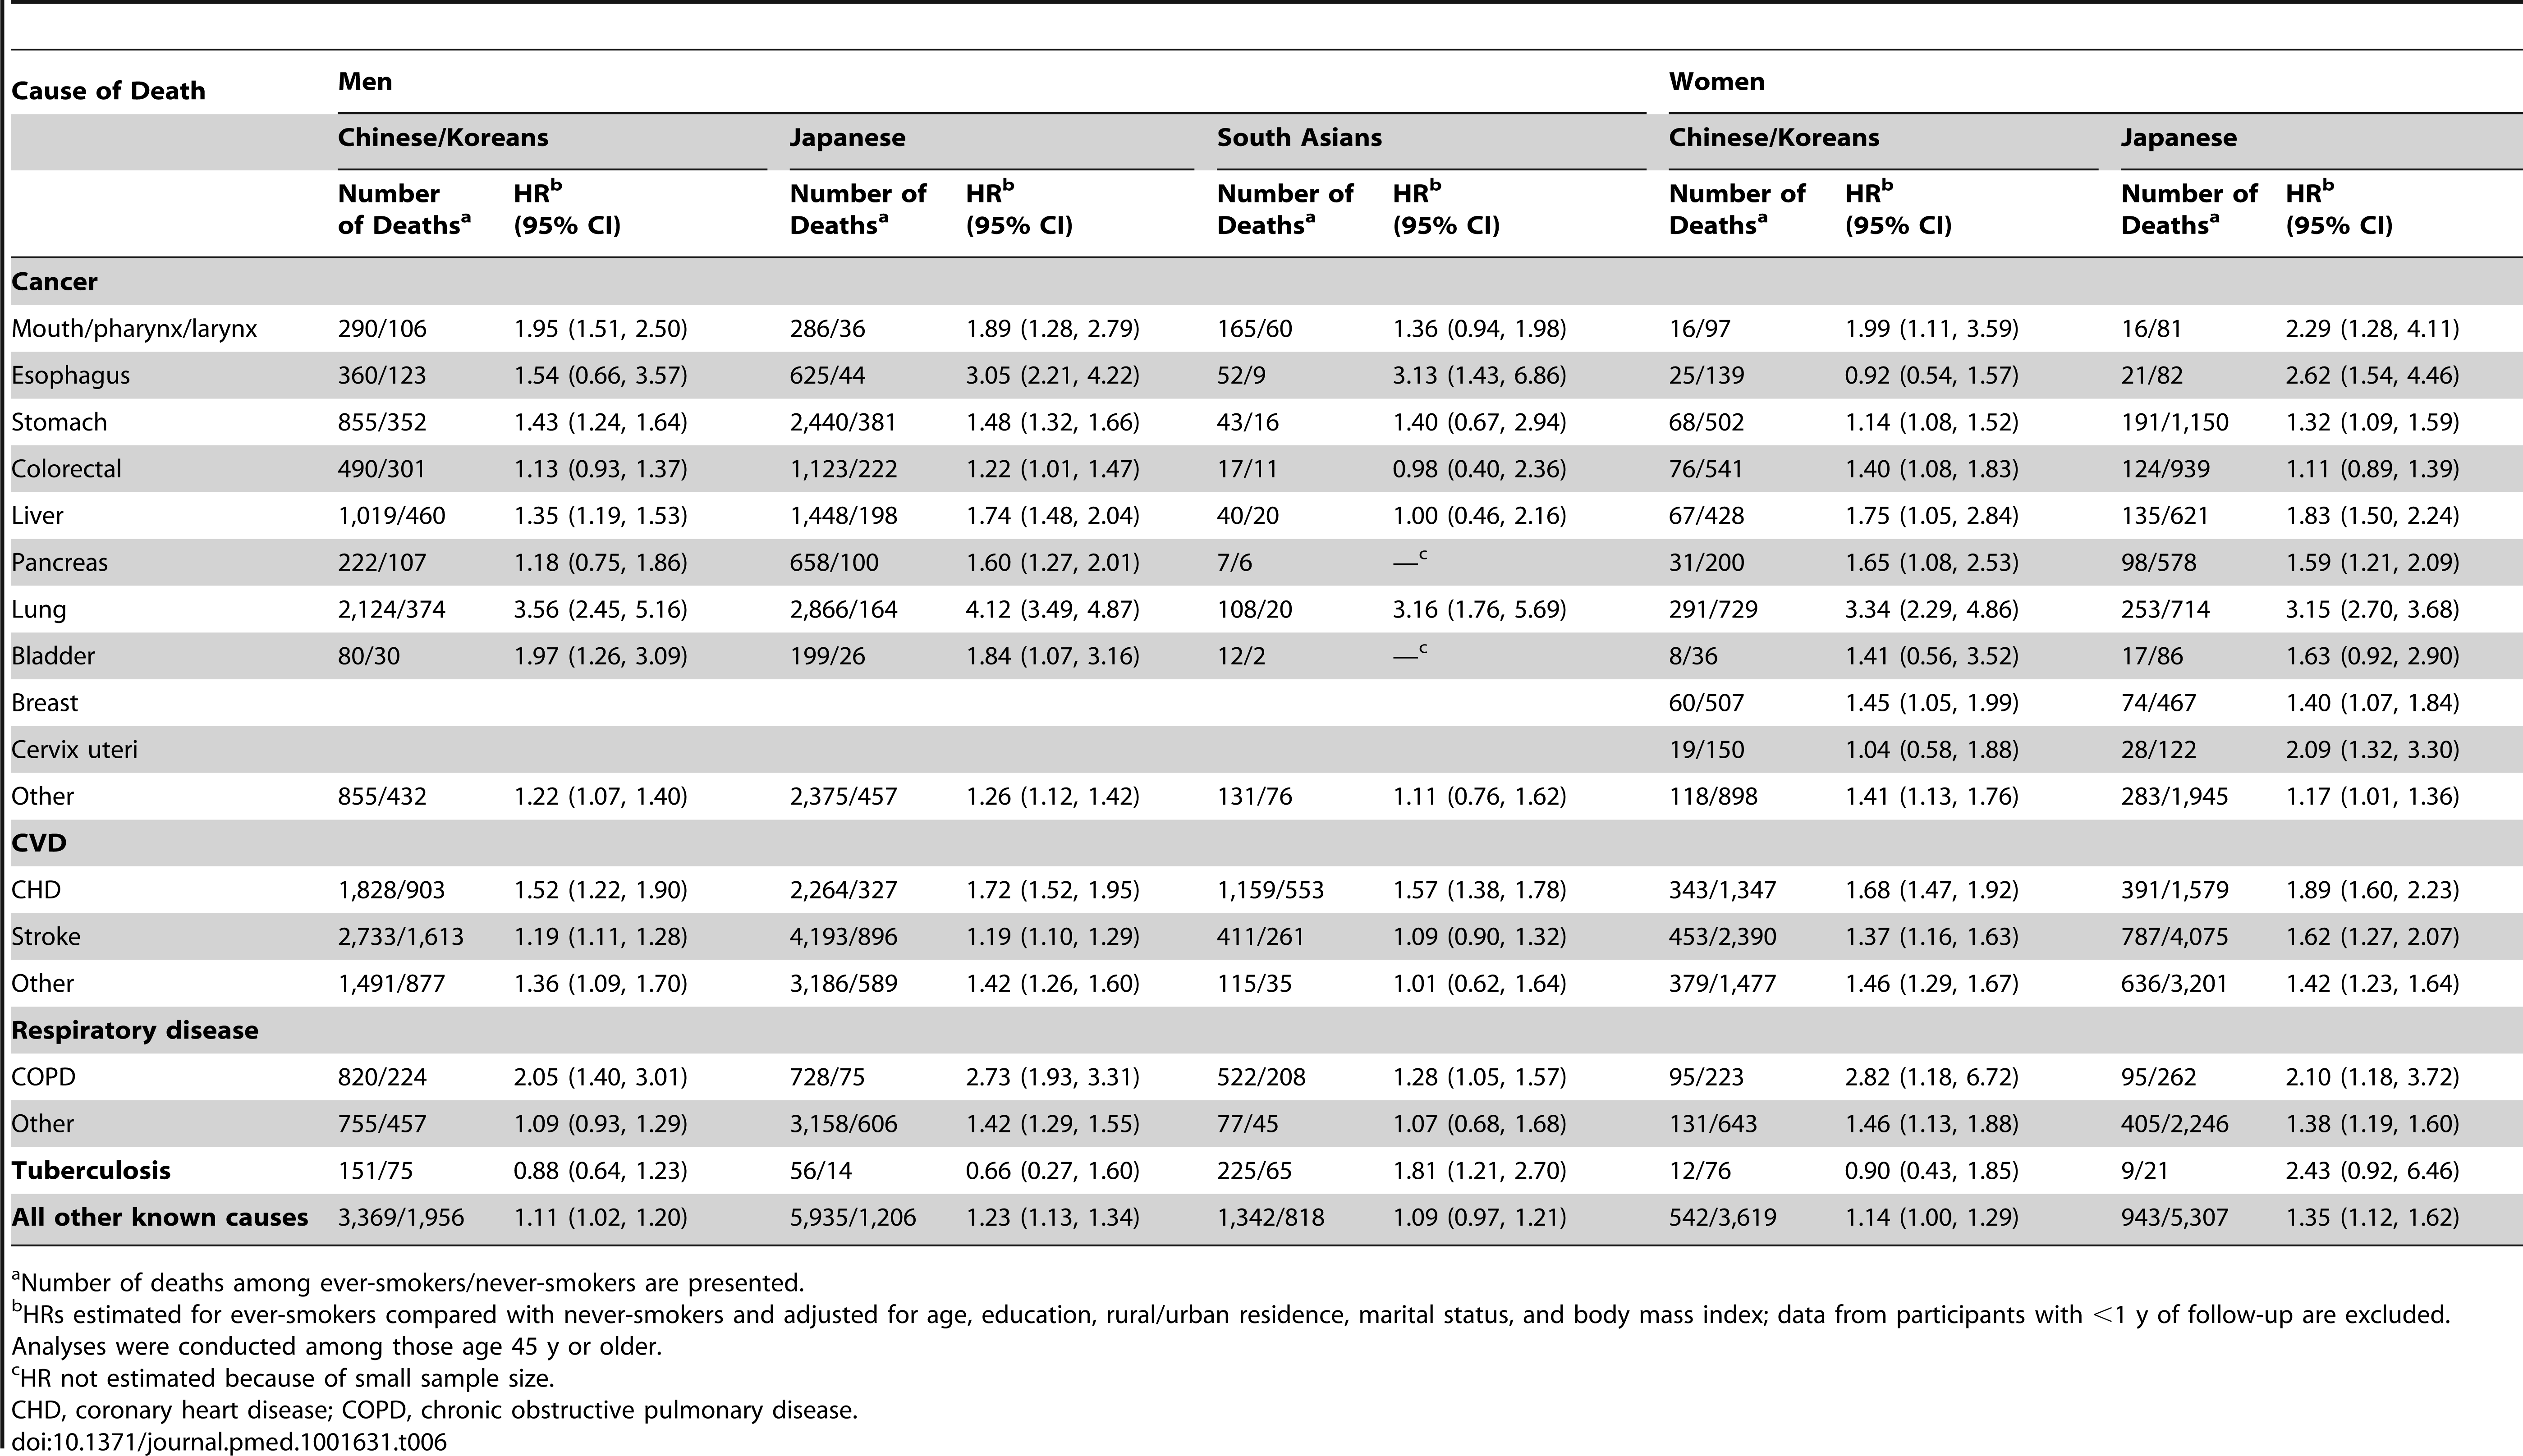 Association of tobacco smoking with risk of cause-specific death by study populations in Asia.